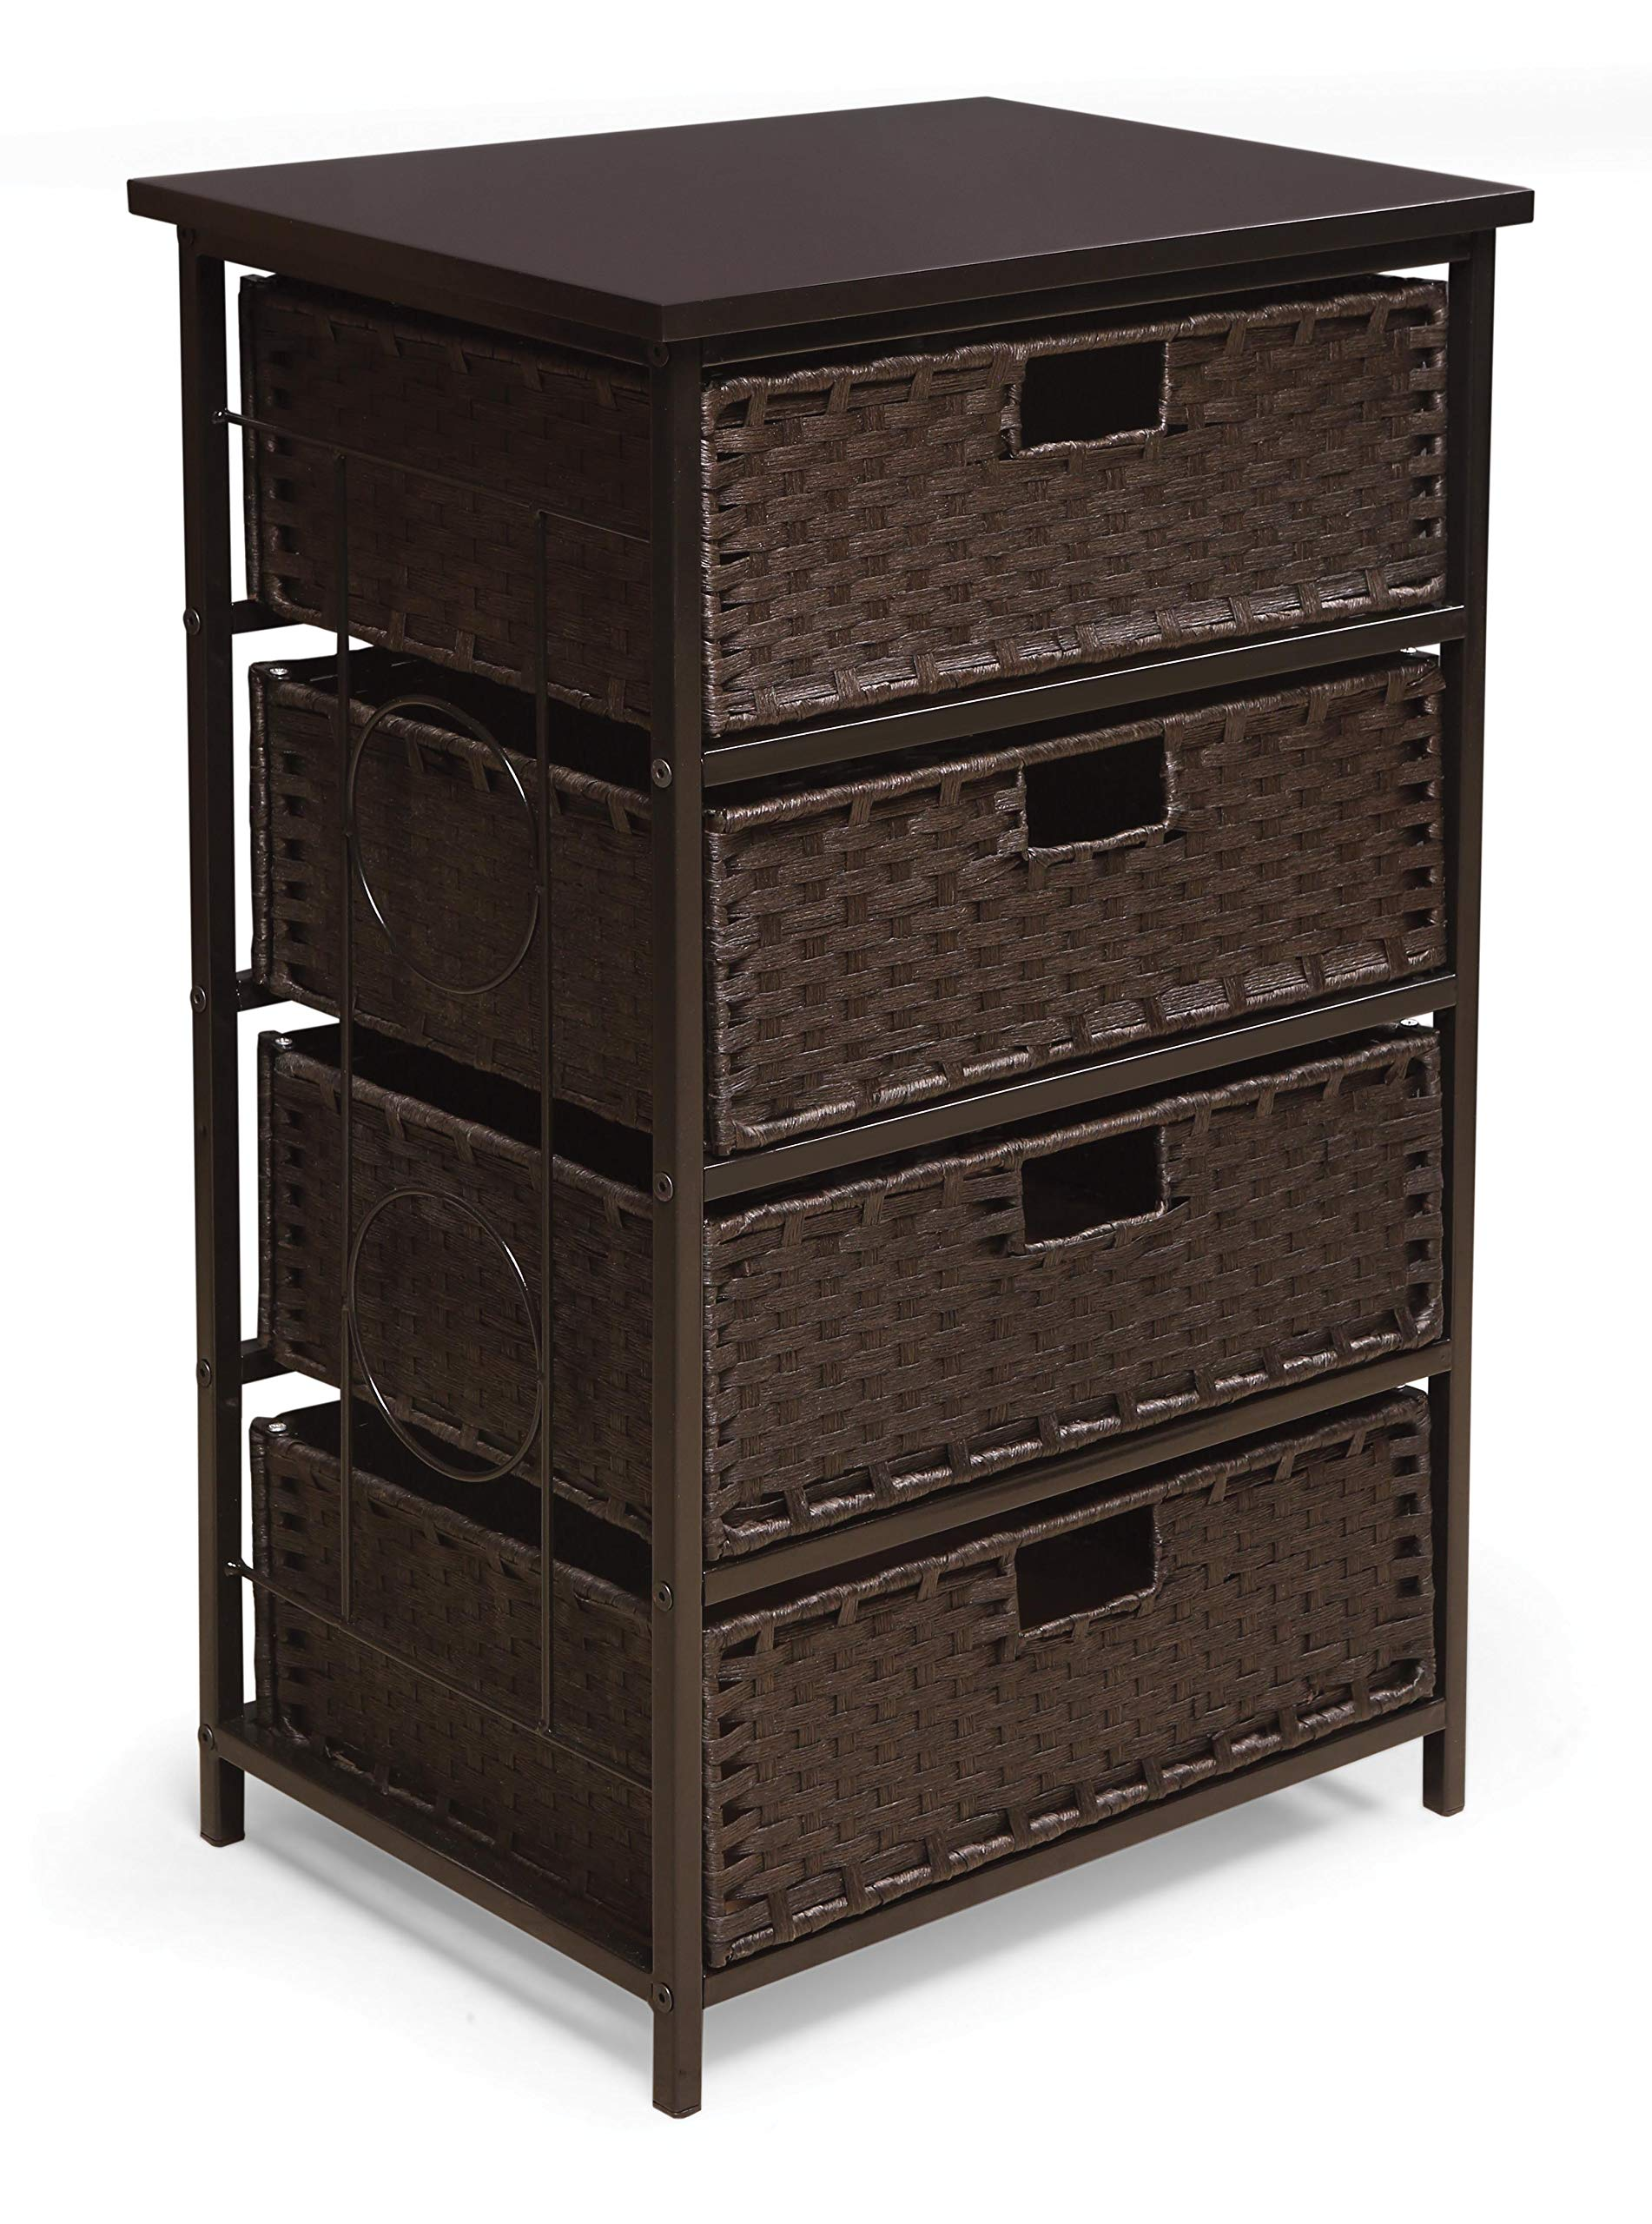 August Collection Tall Four Basket Drawer Storage Unit